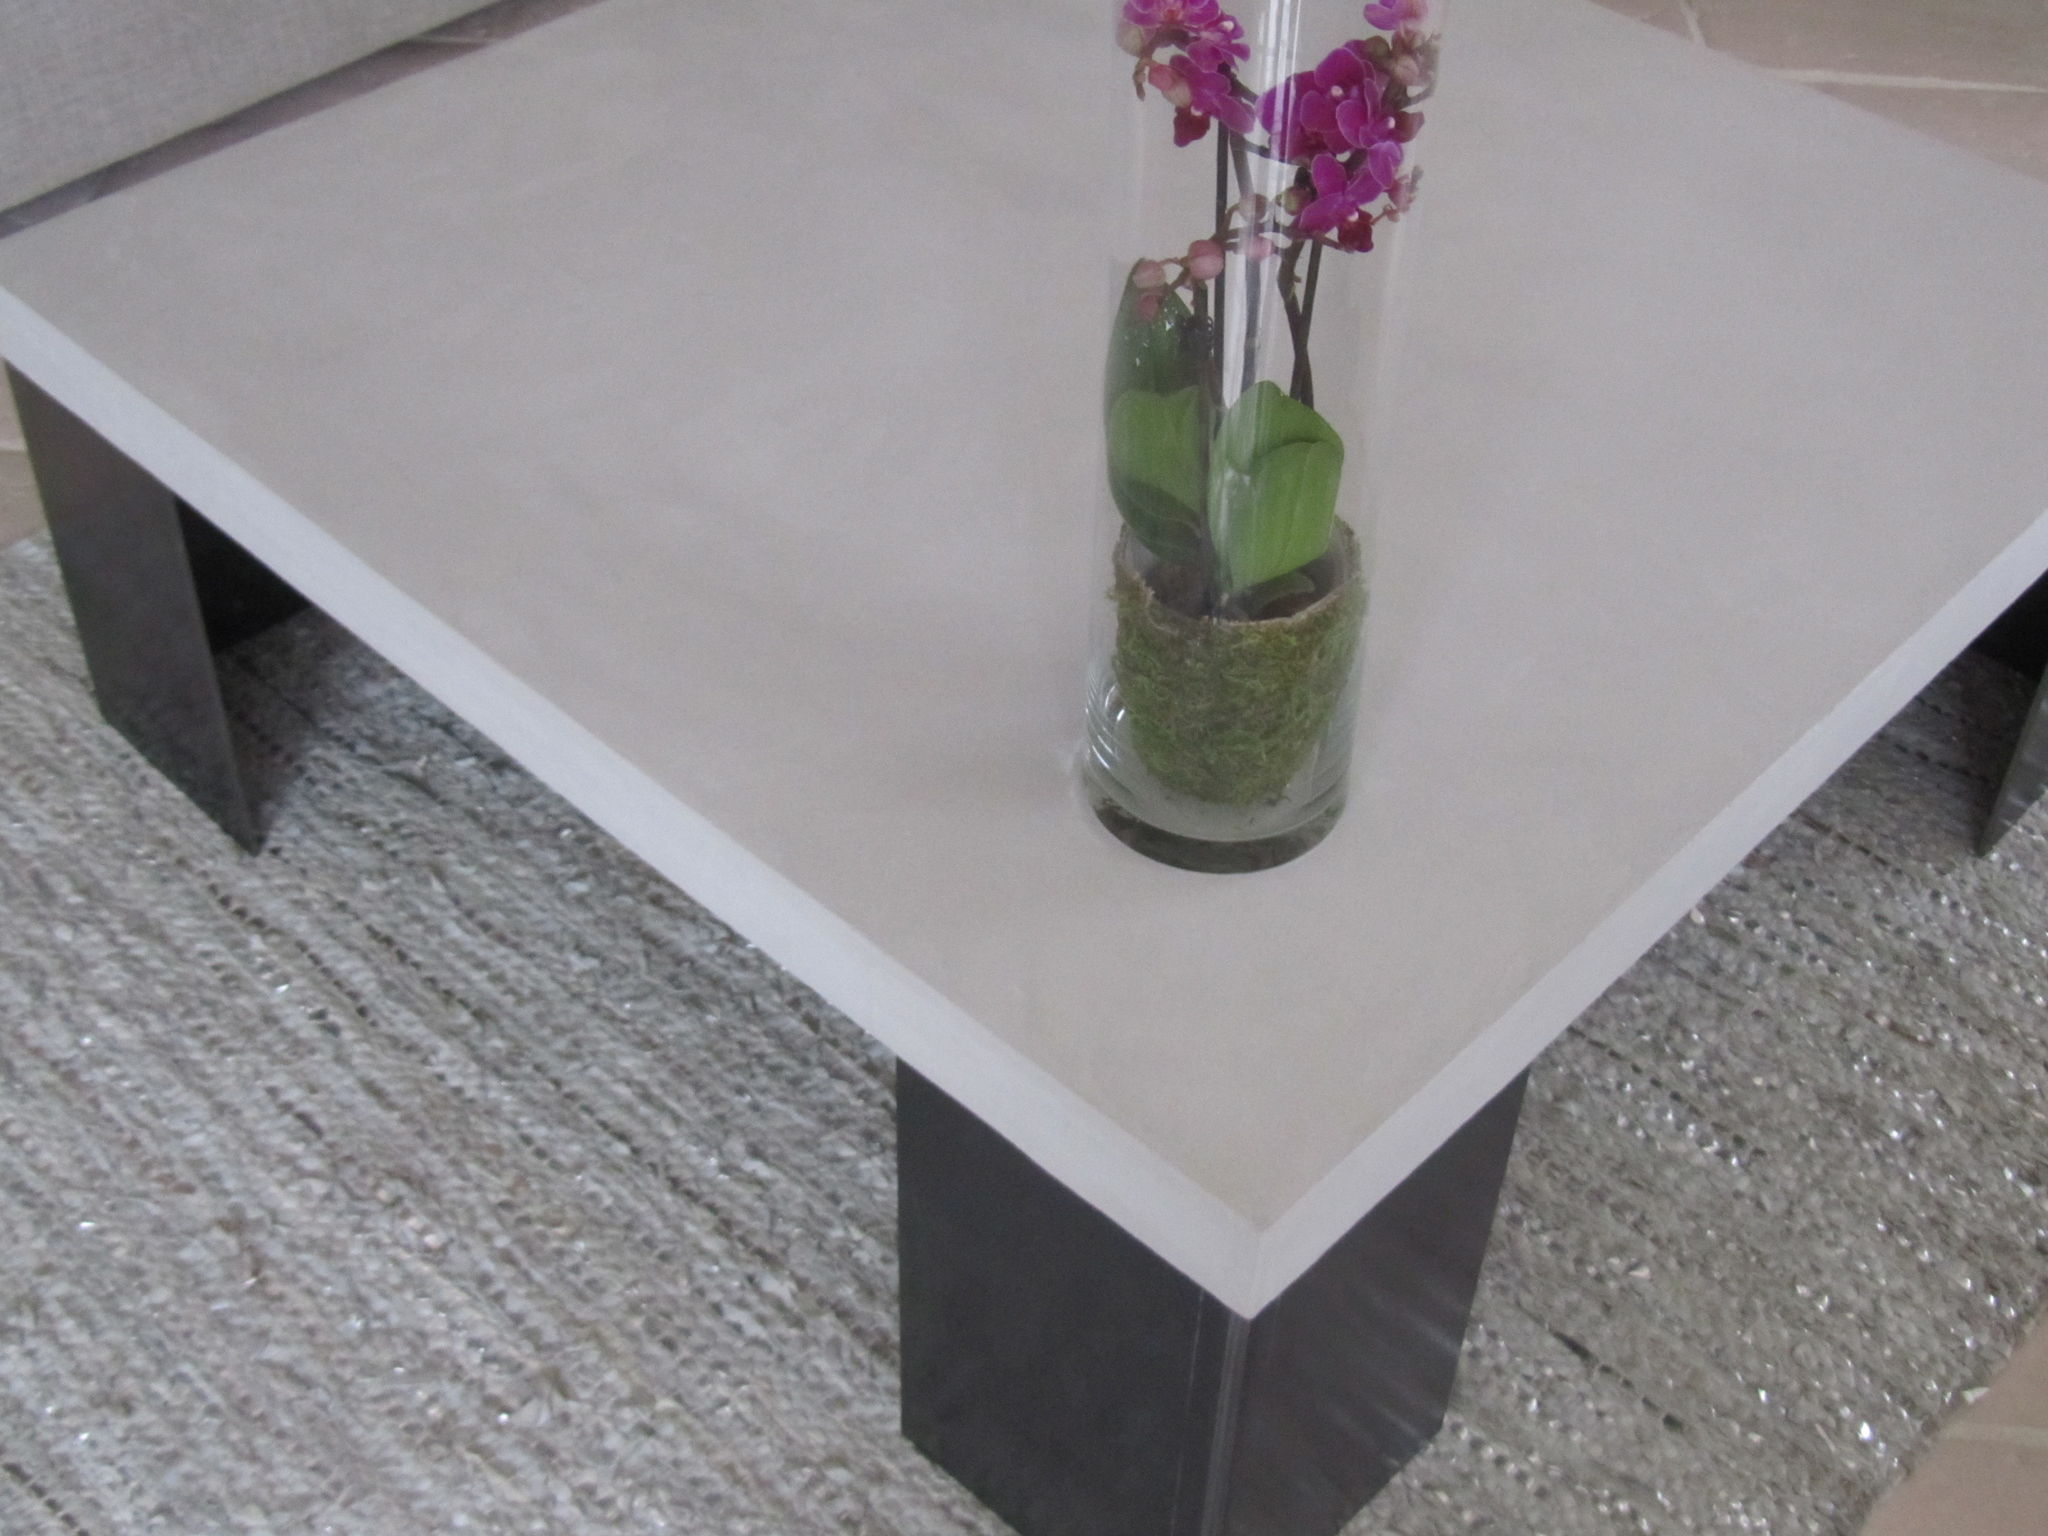 Table en beton cire pied acier photo de beton cire le mobilier catherine pendanx - Table en beton cire ...